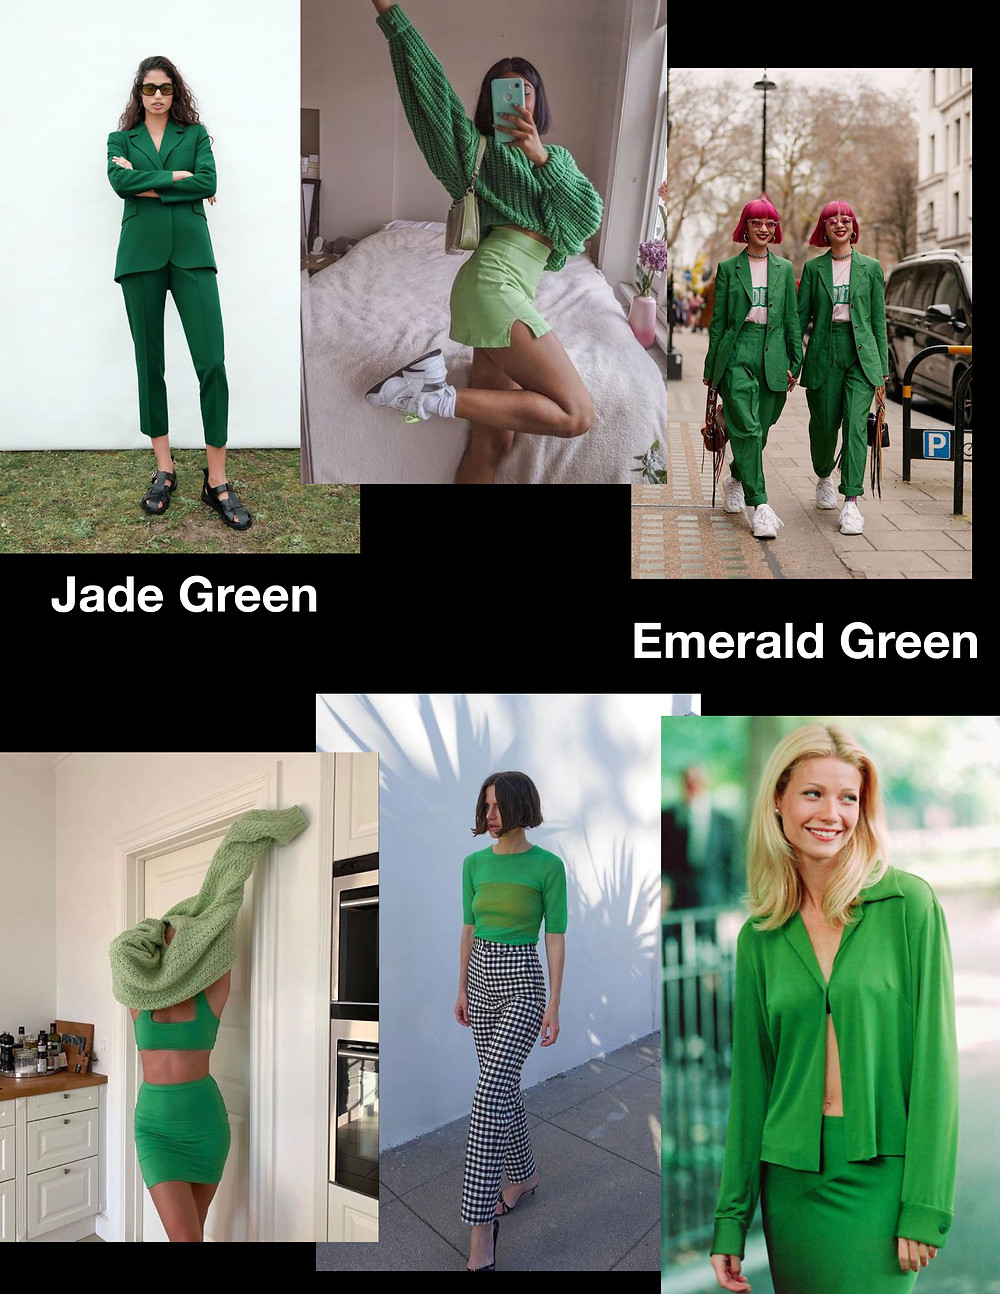 fashion trends for summer 2021, green outfits, shopping guide, stylist advice, jade green, emerald green outfits